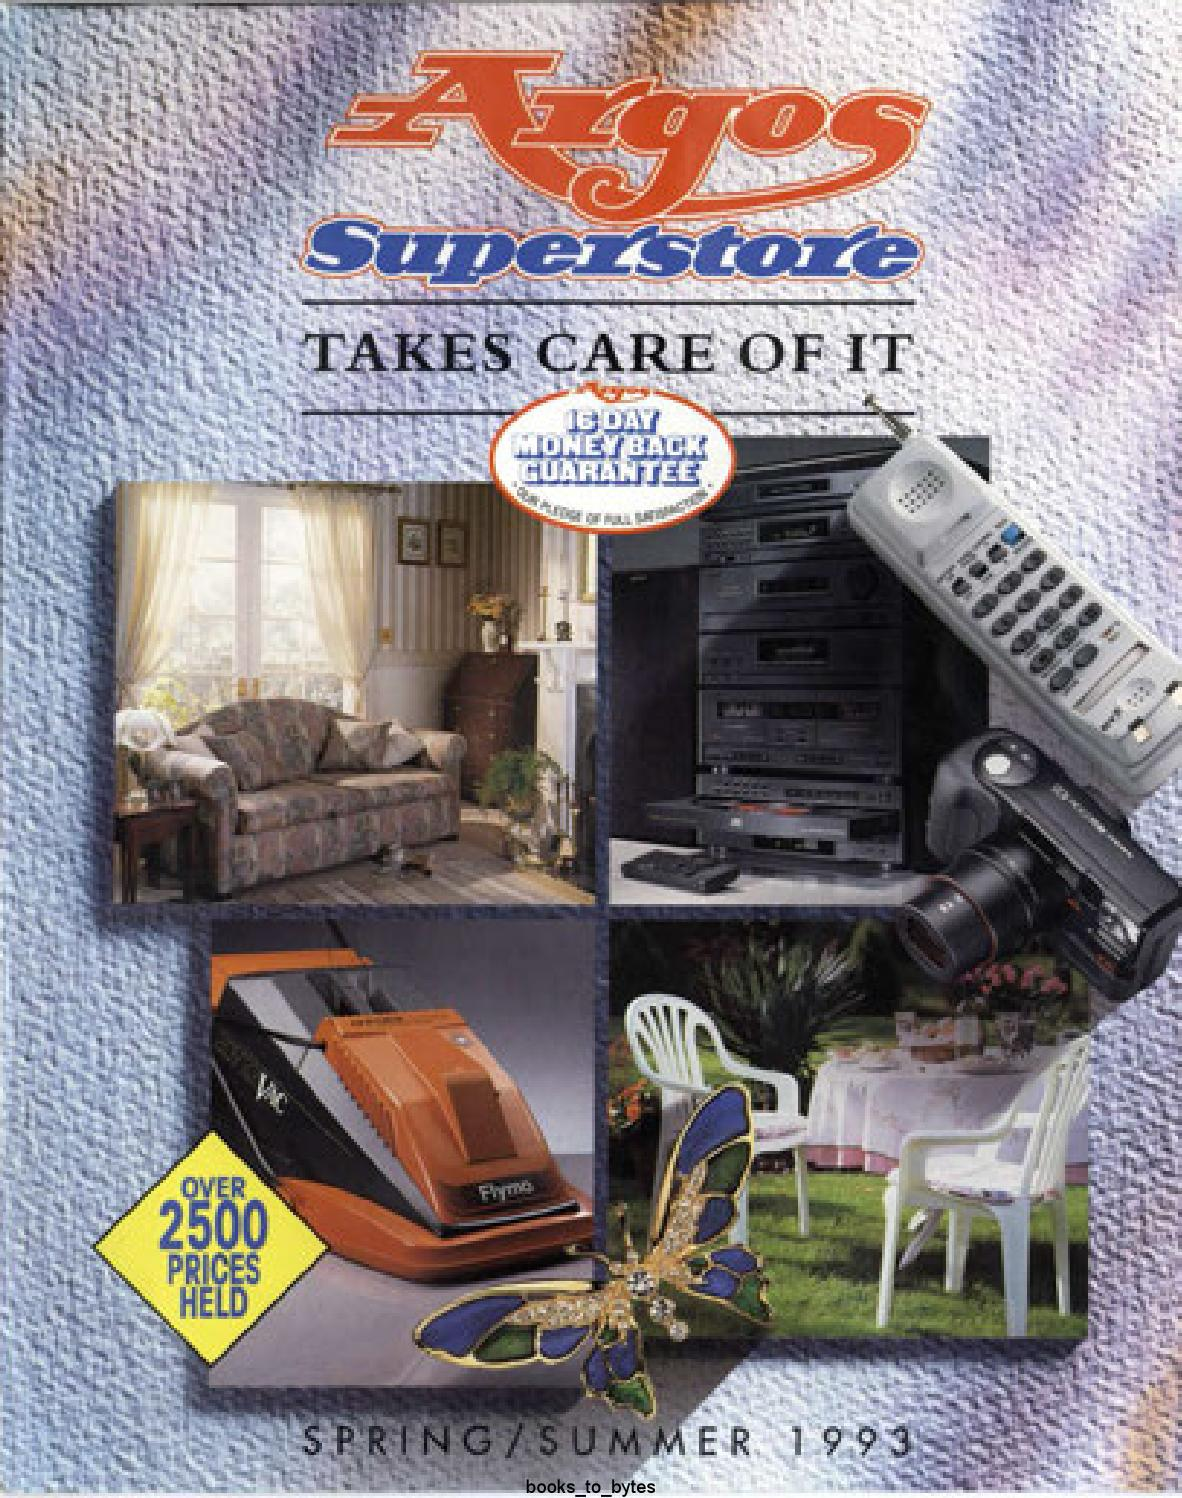 Argos Superstore 1993 Springsummer By Retromash Issuu